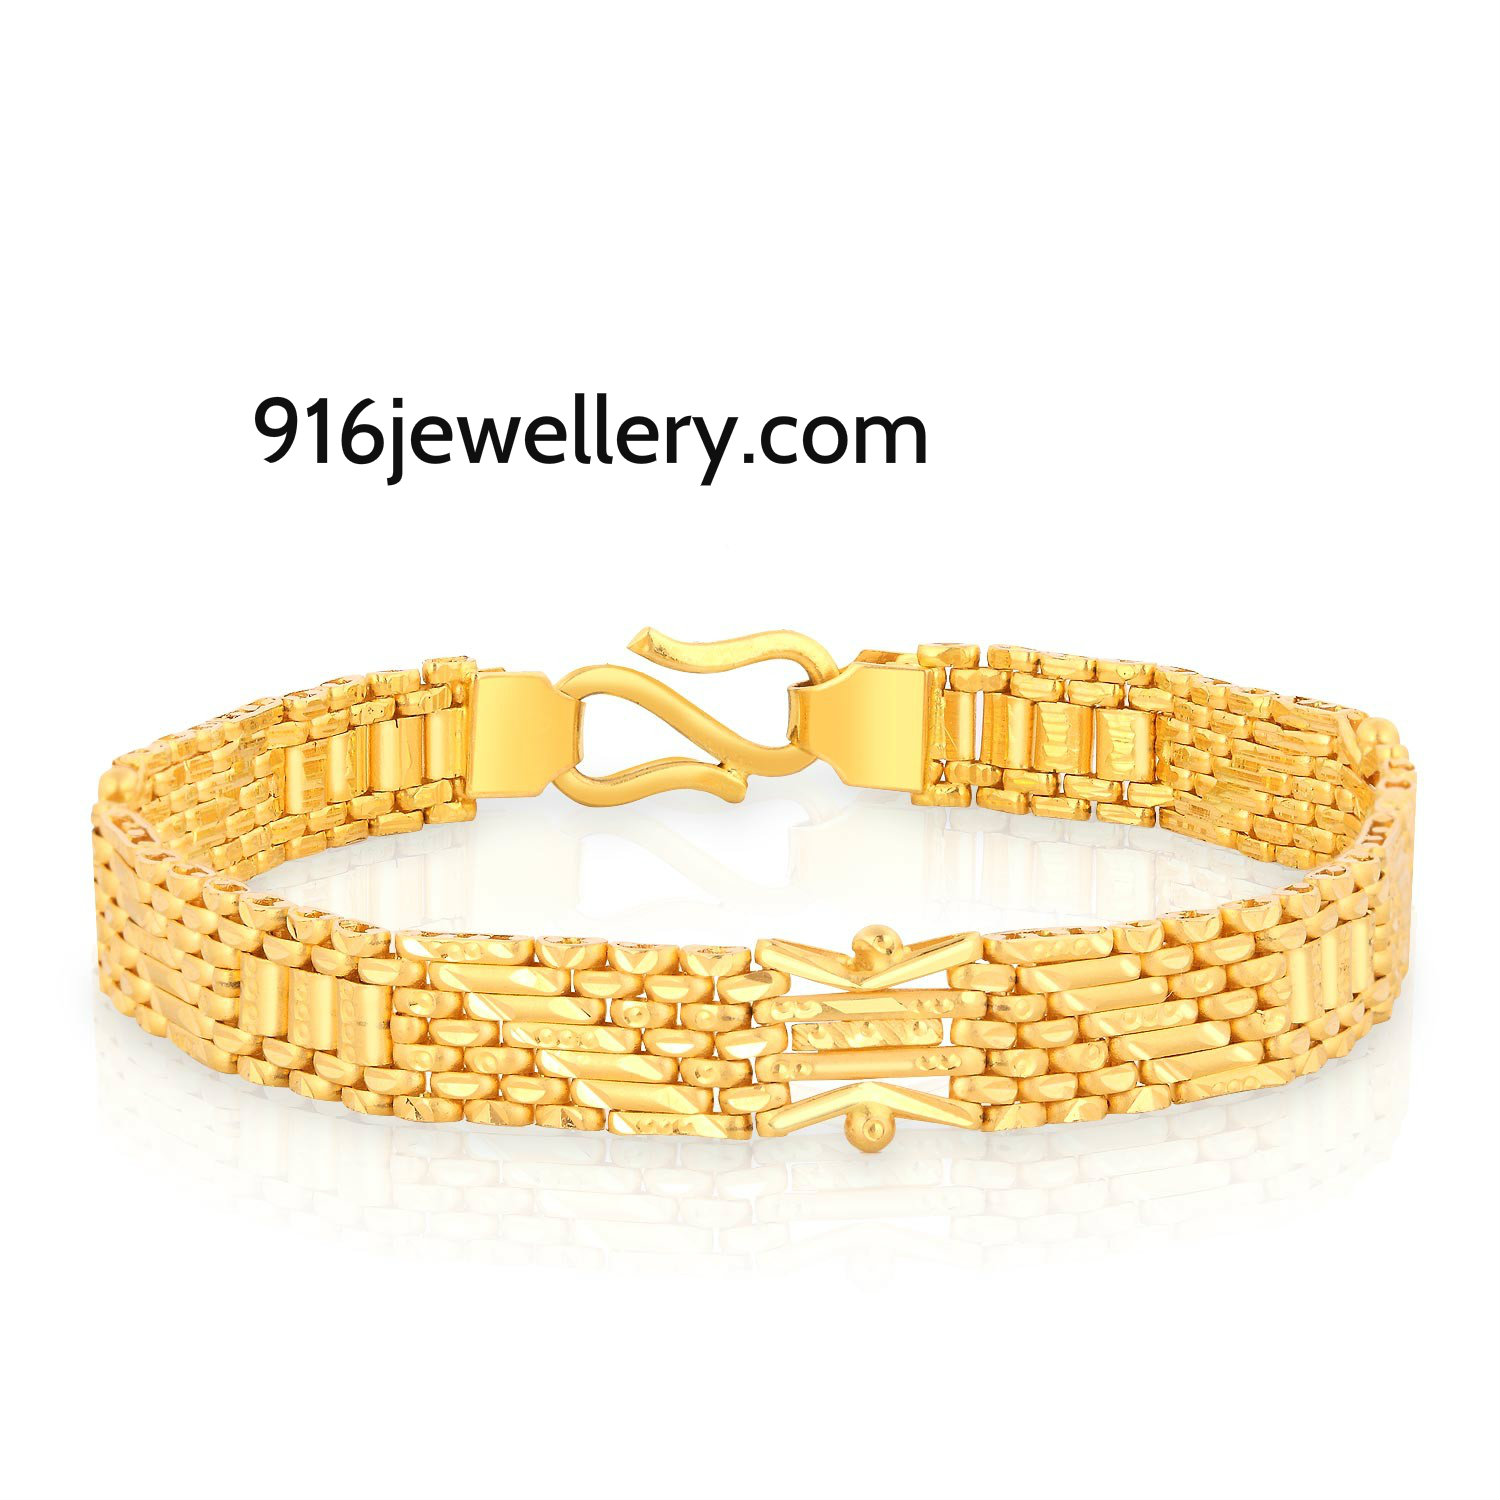 Gold bracelets for men designs | SUDHAKAR GOLD WORKS